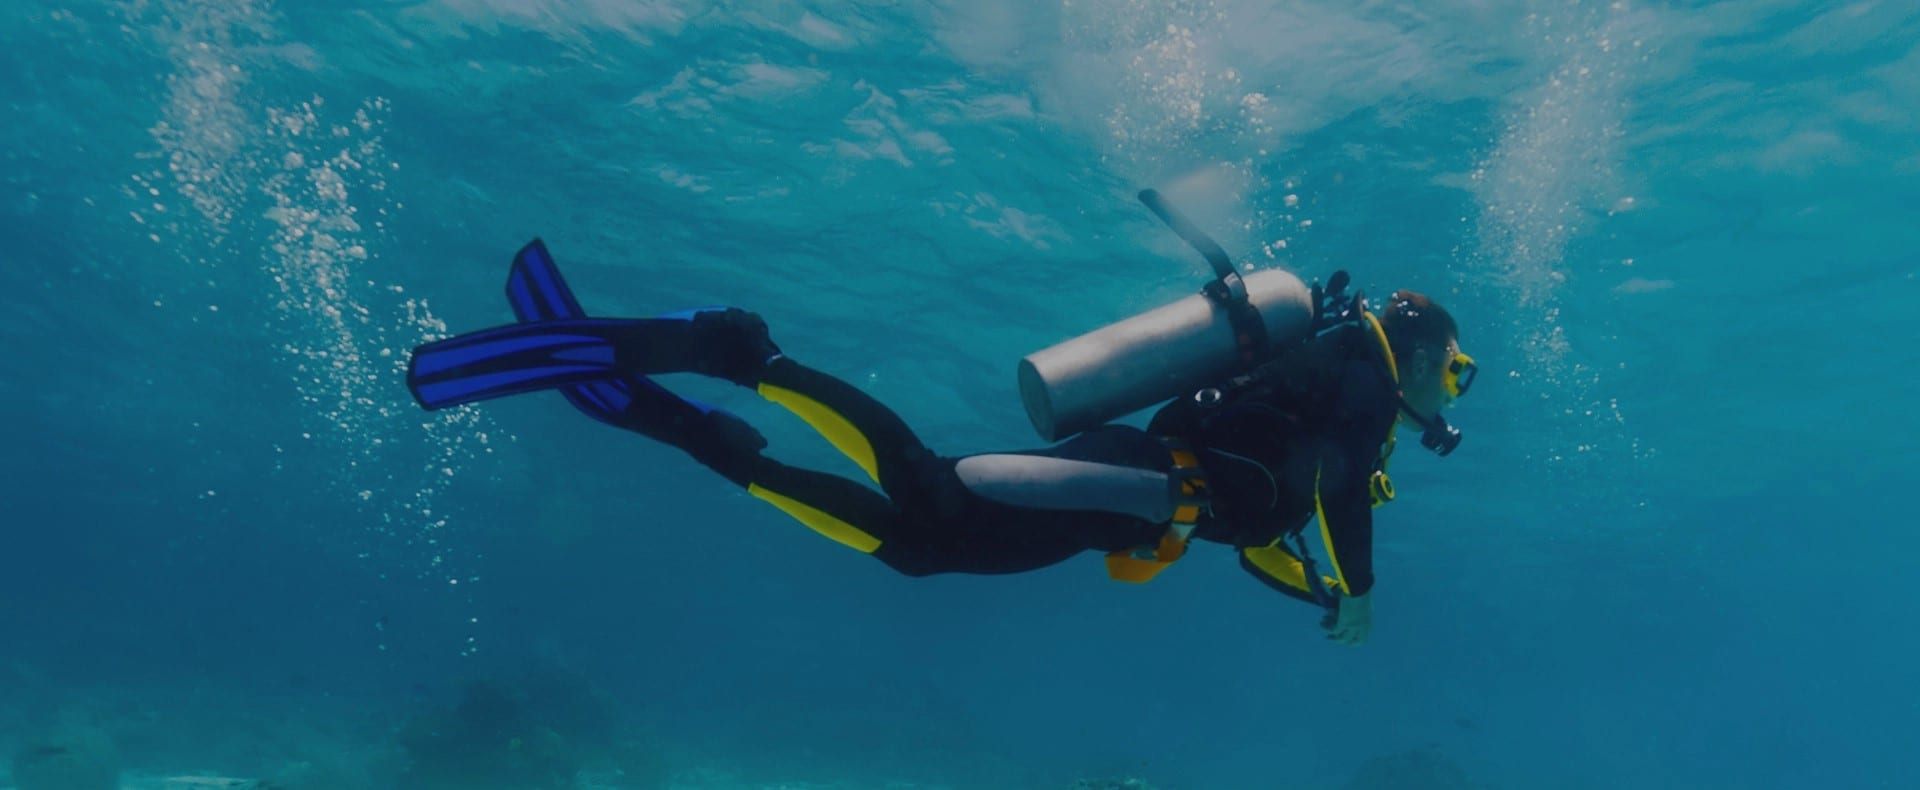 Diver in clear blue water